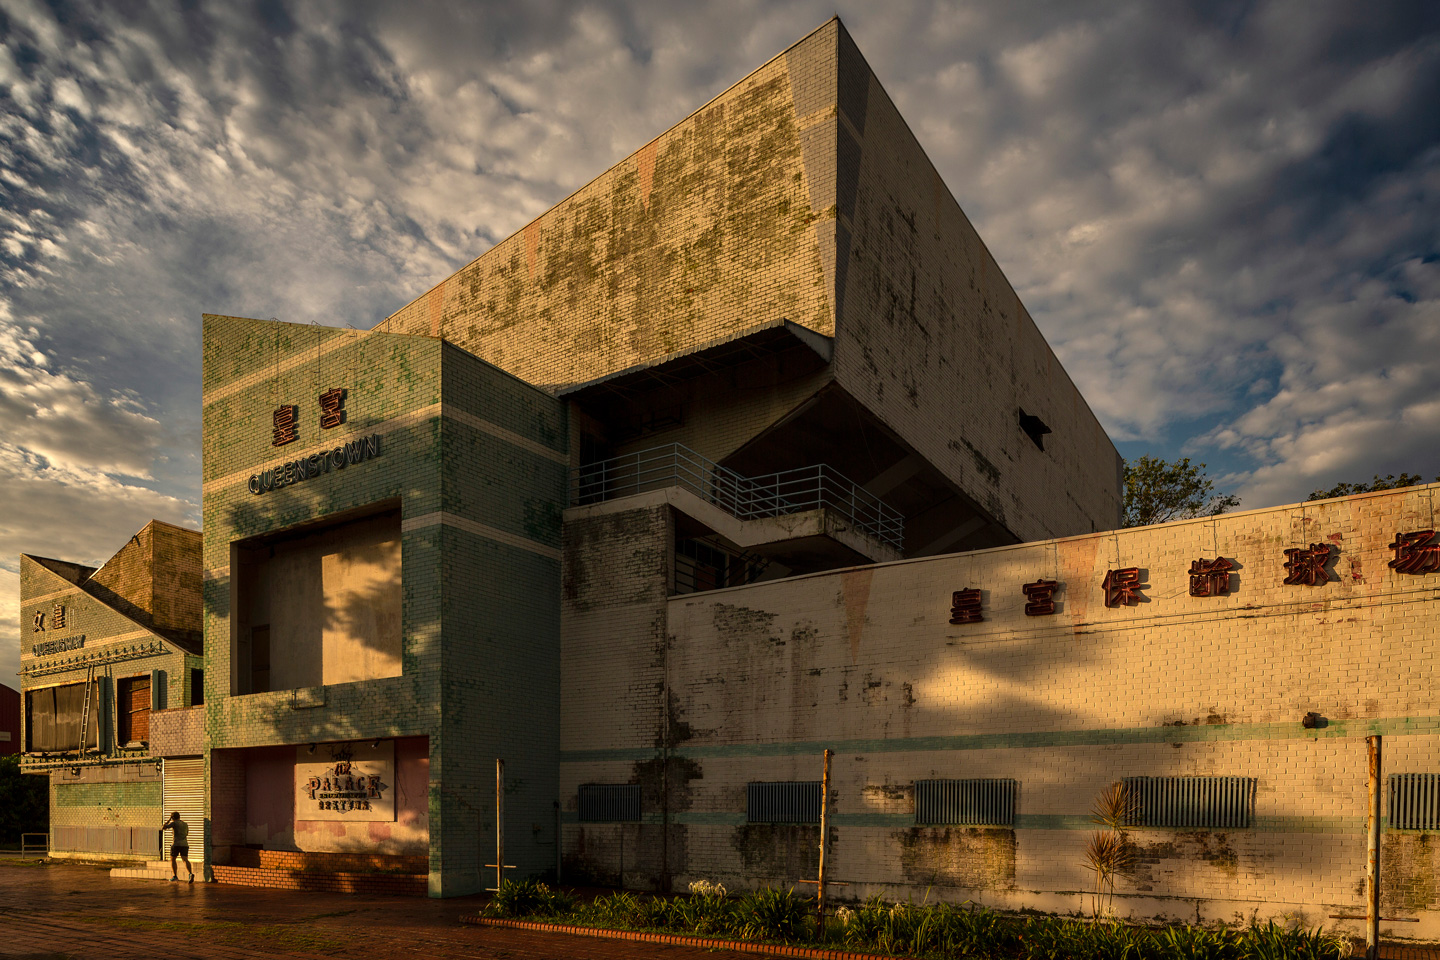 Queenstown Cinema, Singapore, demolished 2013 © Darren Soh